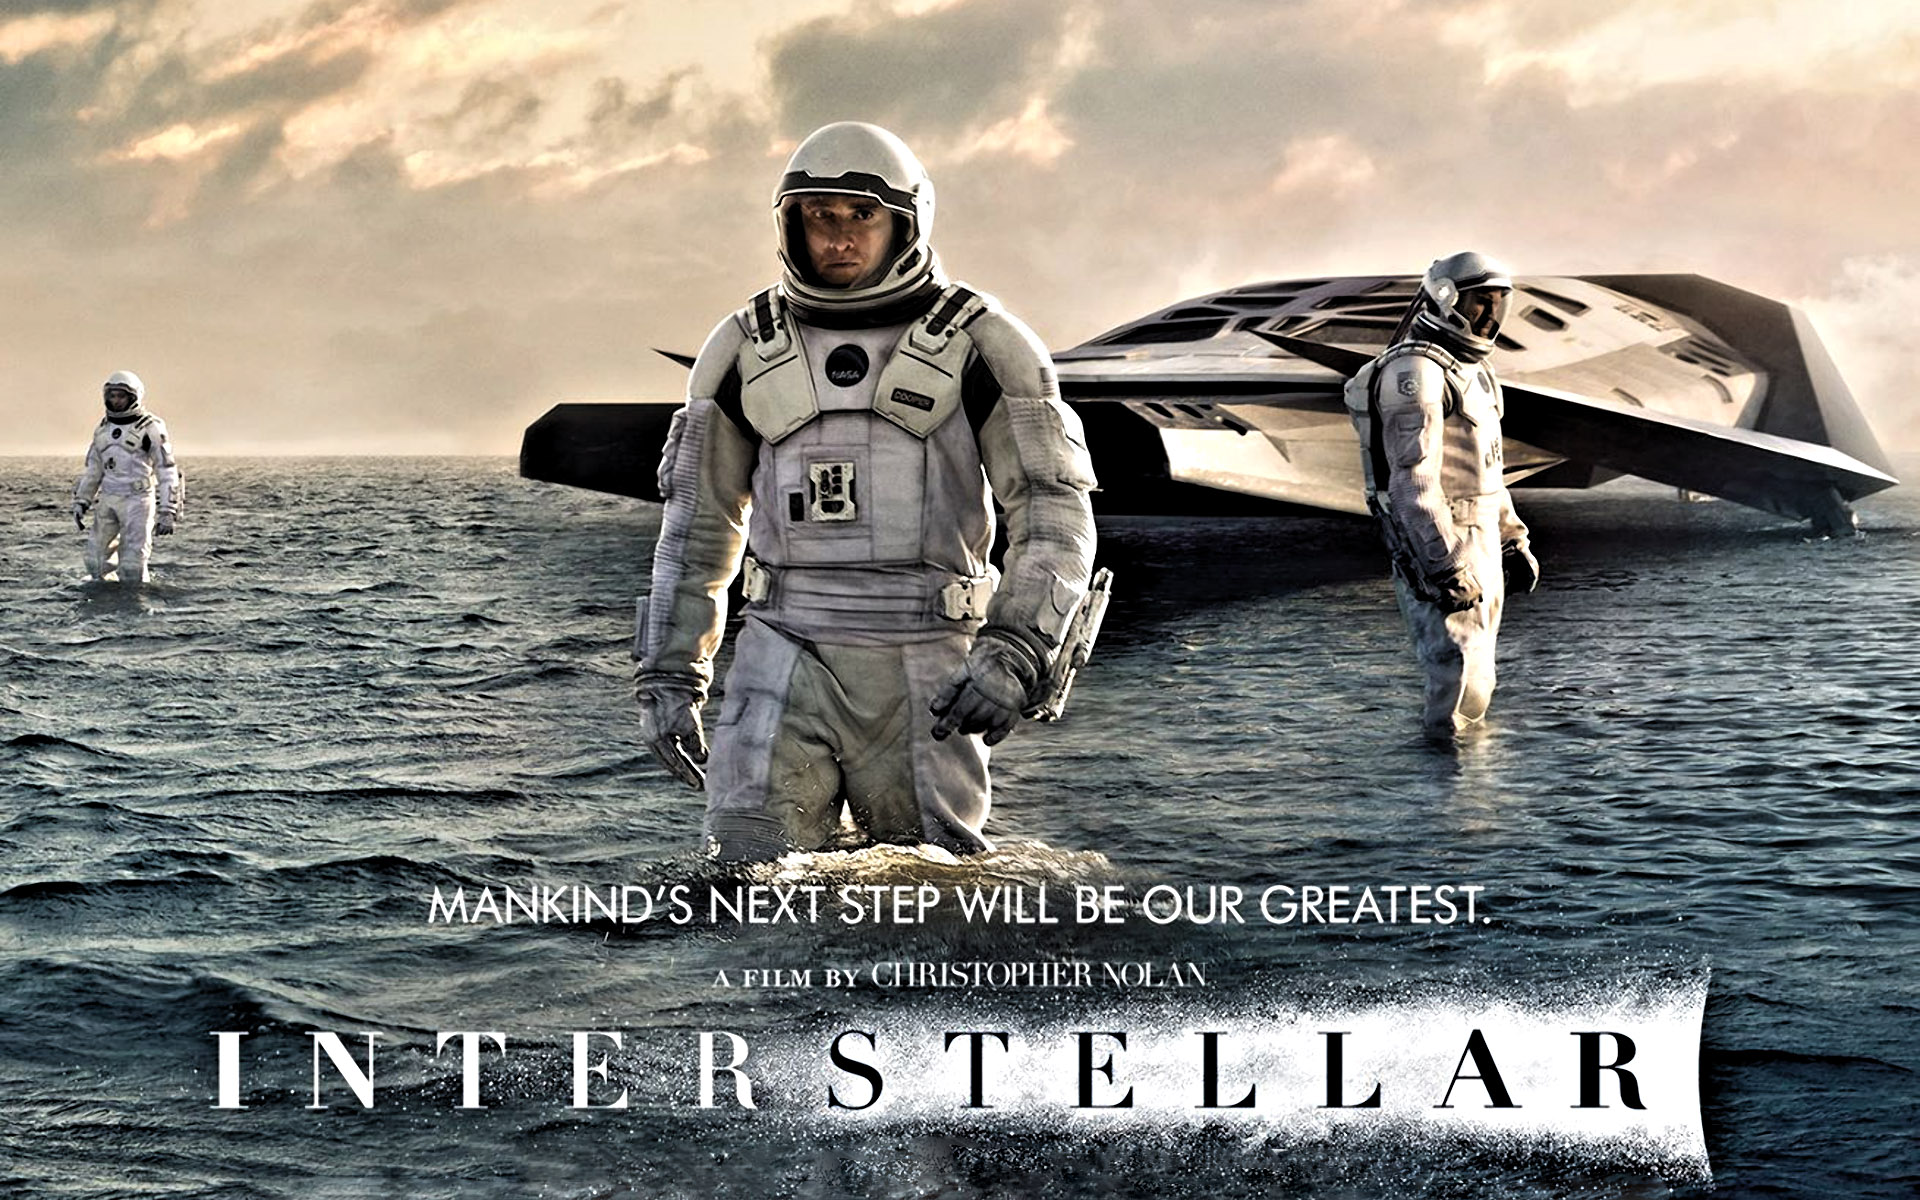 interstellar-imax-poster-wallpaper-these-awesome-fan-made-interstellar-posters-are-best-seen-after-the-film